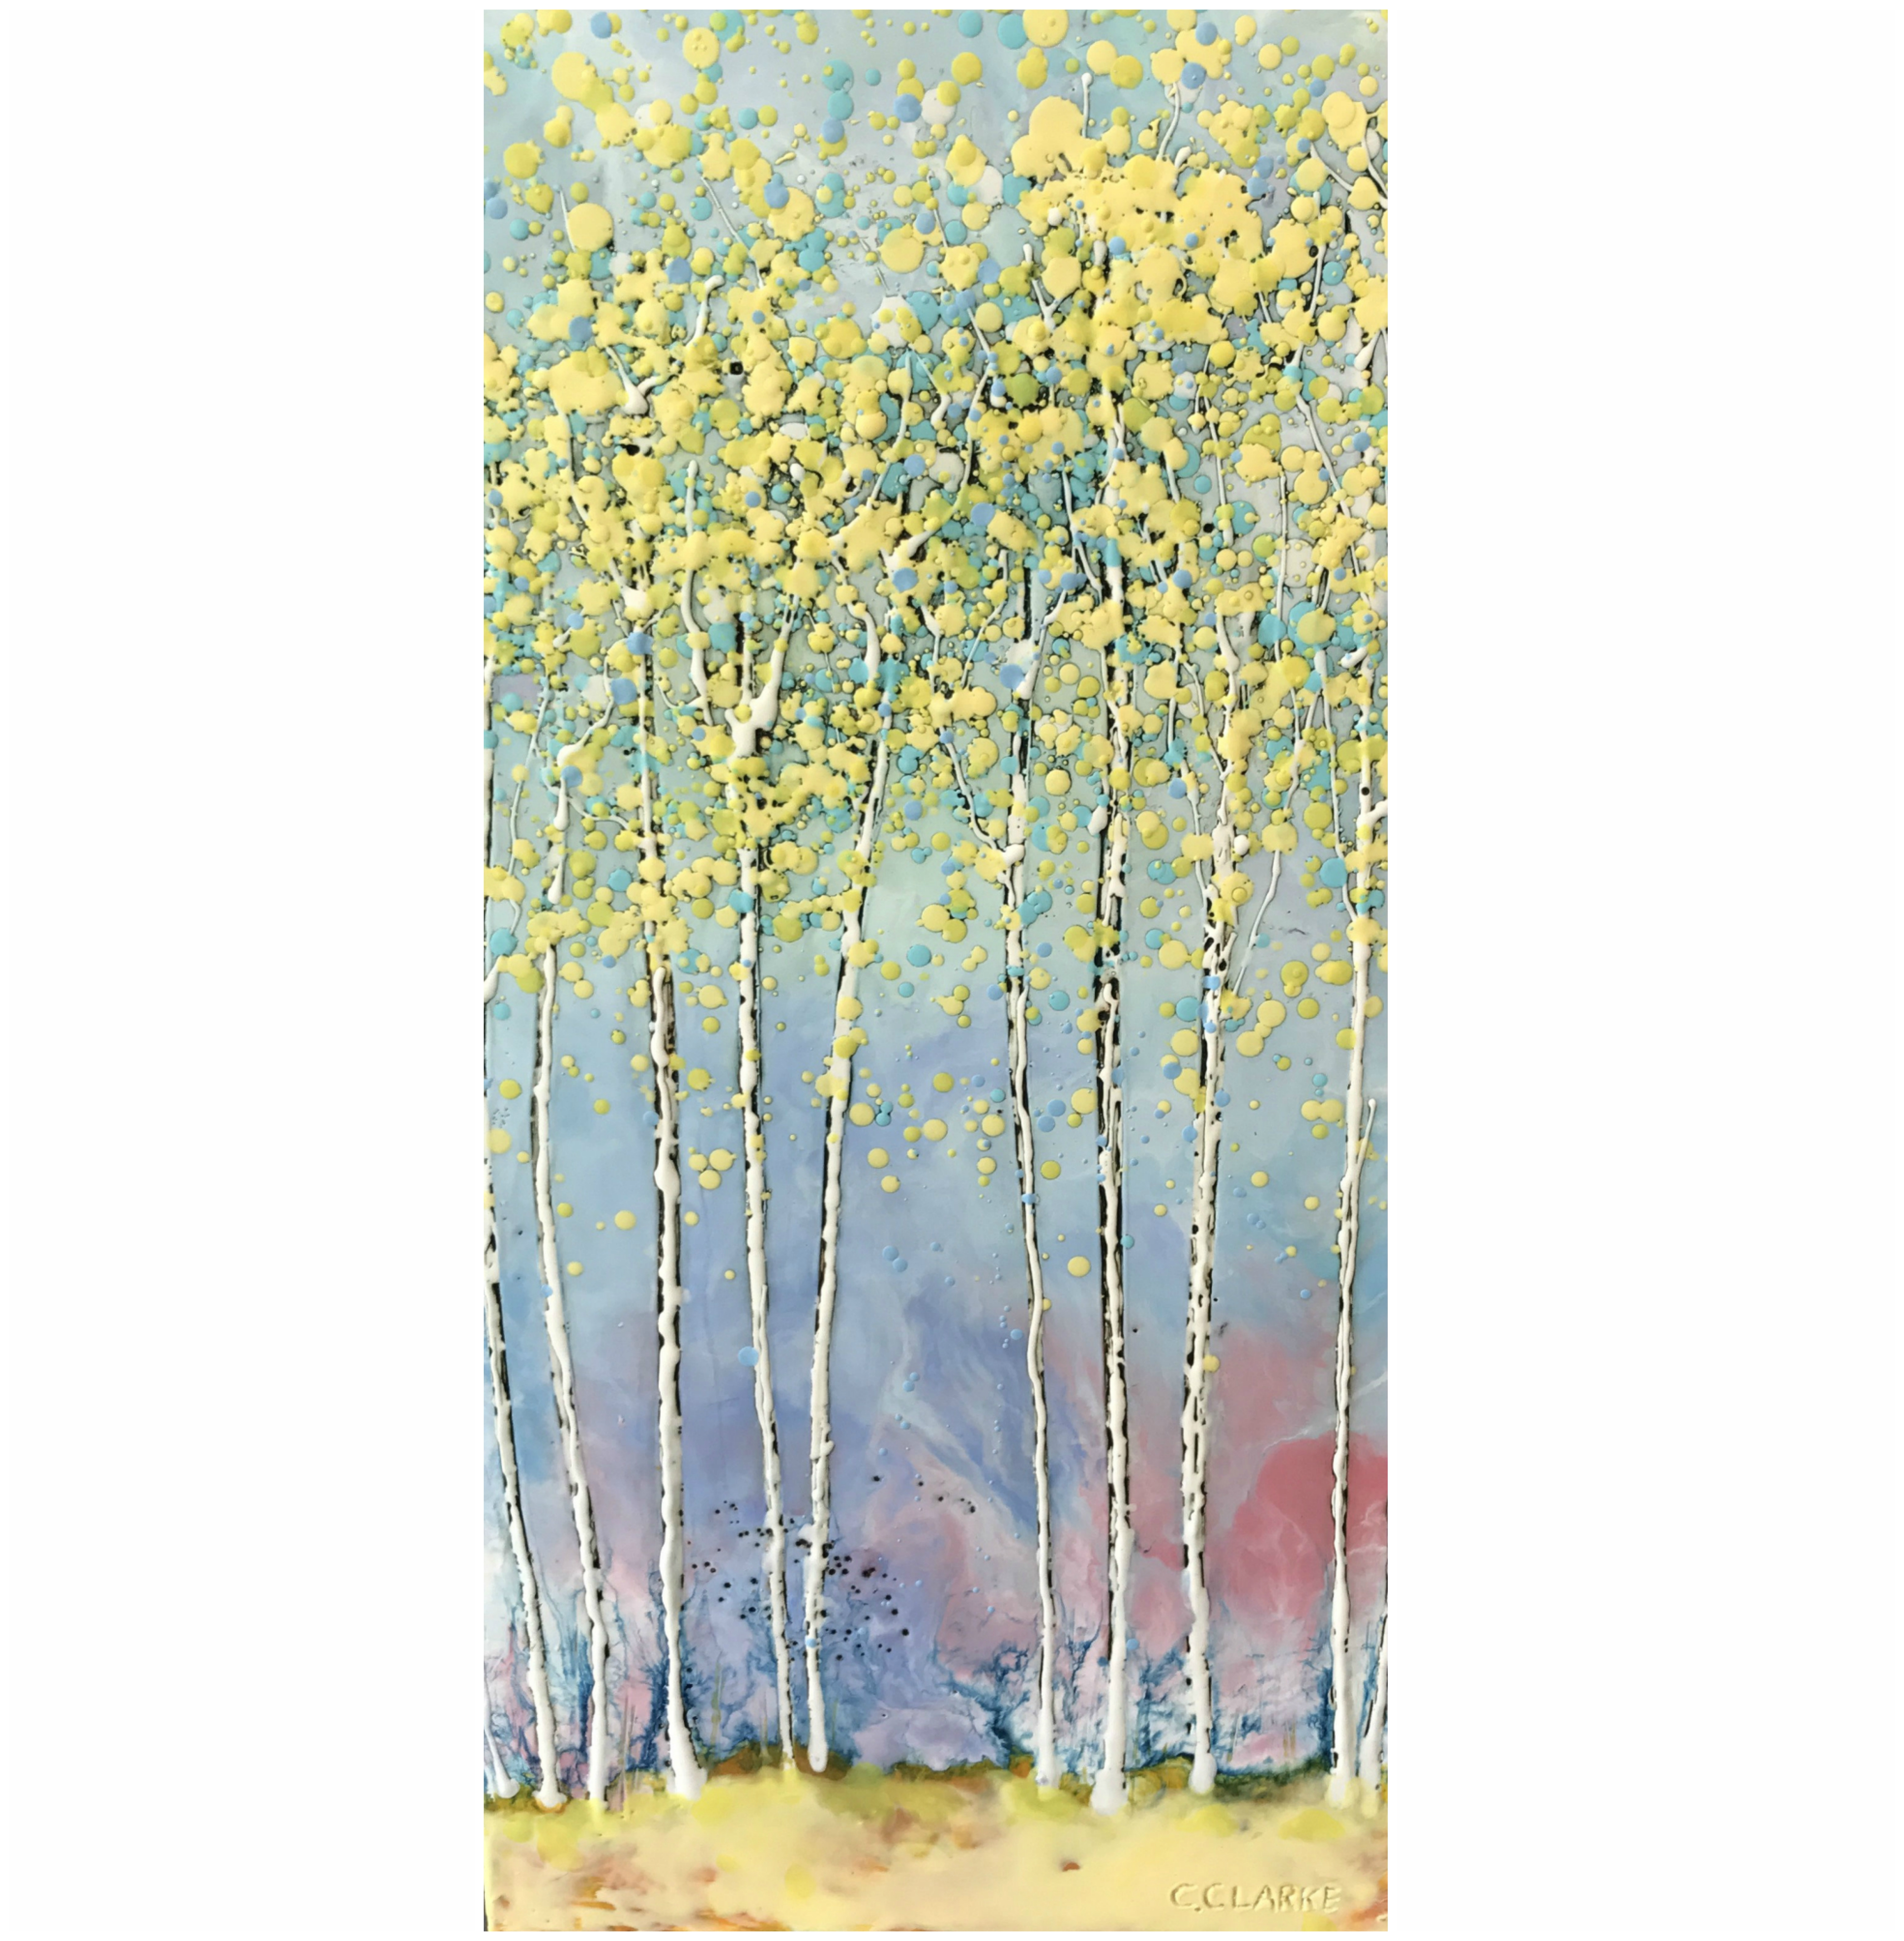 New Horizon, encaustic tree painting by Catharine Clarke | Effusion Art Gallery + Cast Glass Studio, Invermere BC